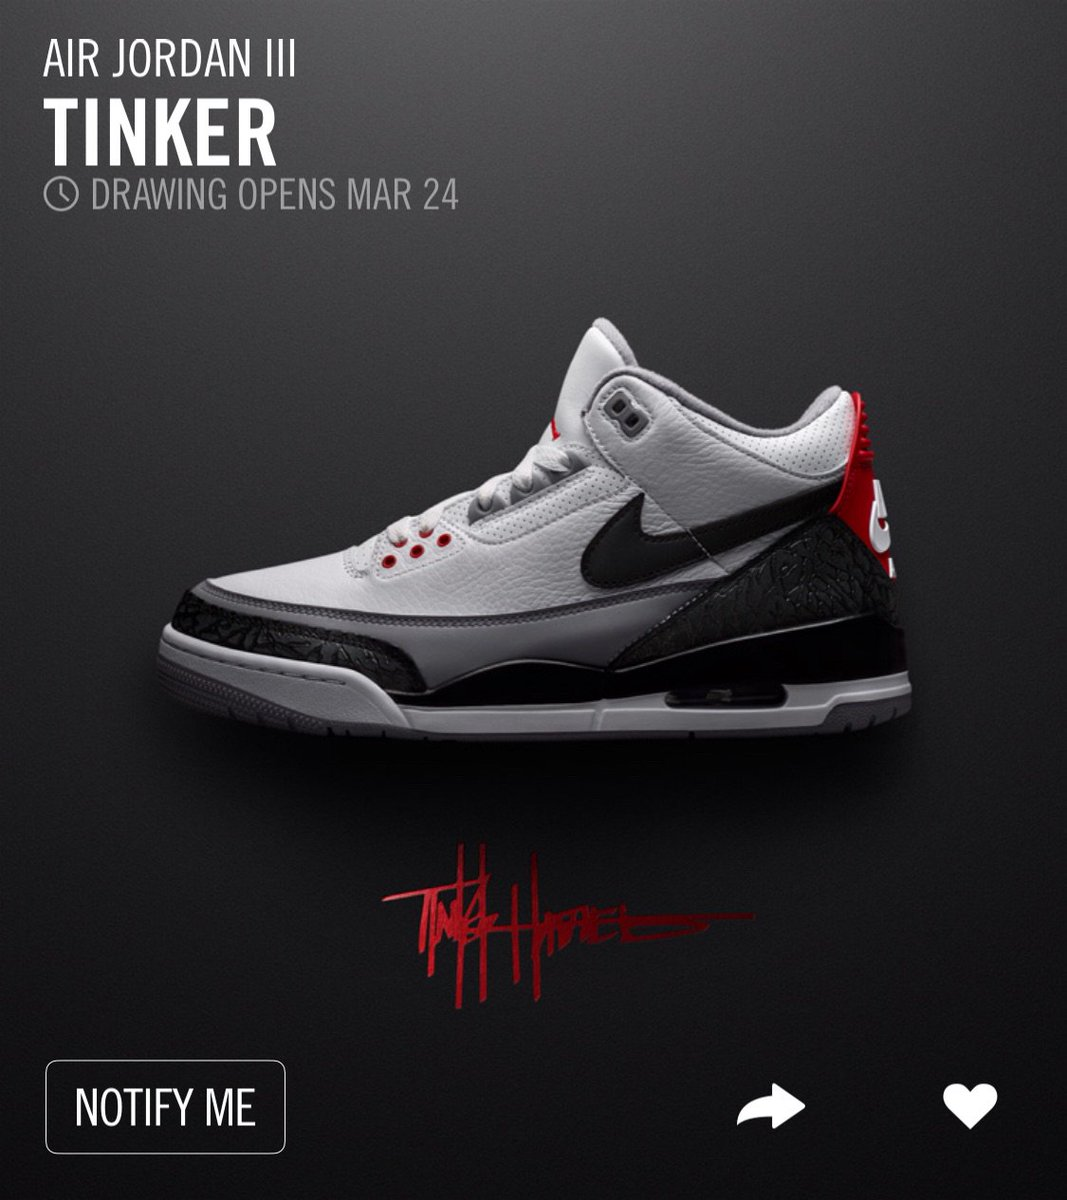 0ff45244682 ... usa j23 iphone app on twitter jordan 3 retro nrg tinker will be a draw  on